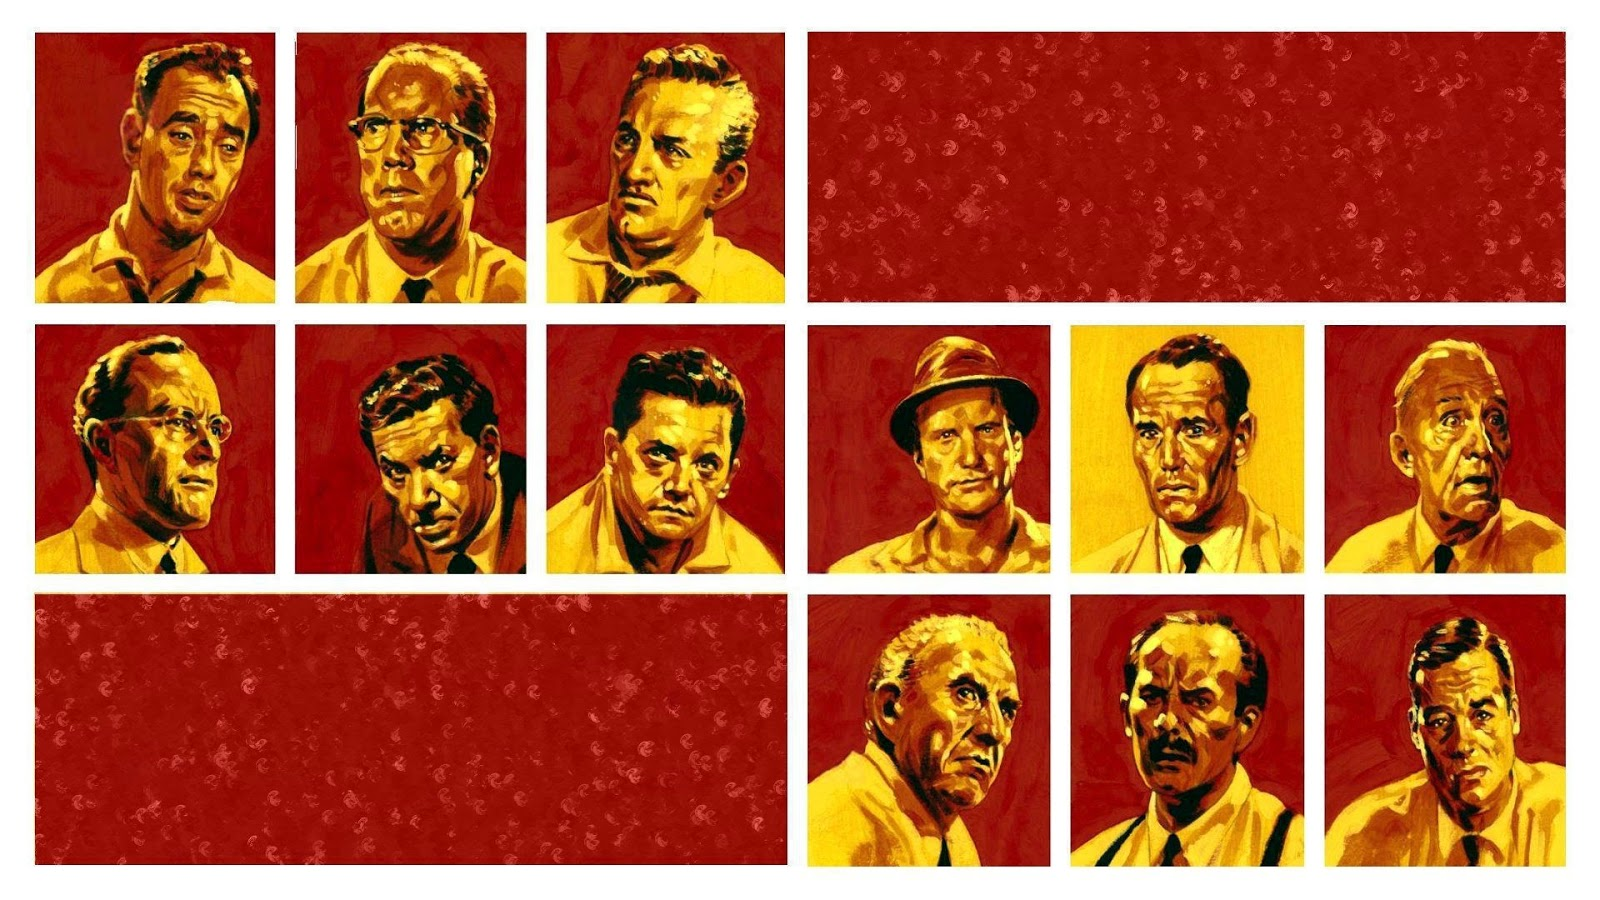 12 Angry Men  Pictures Backgrounds Wallpapers Image Photos